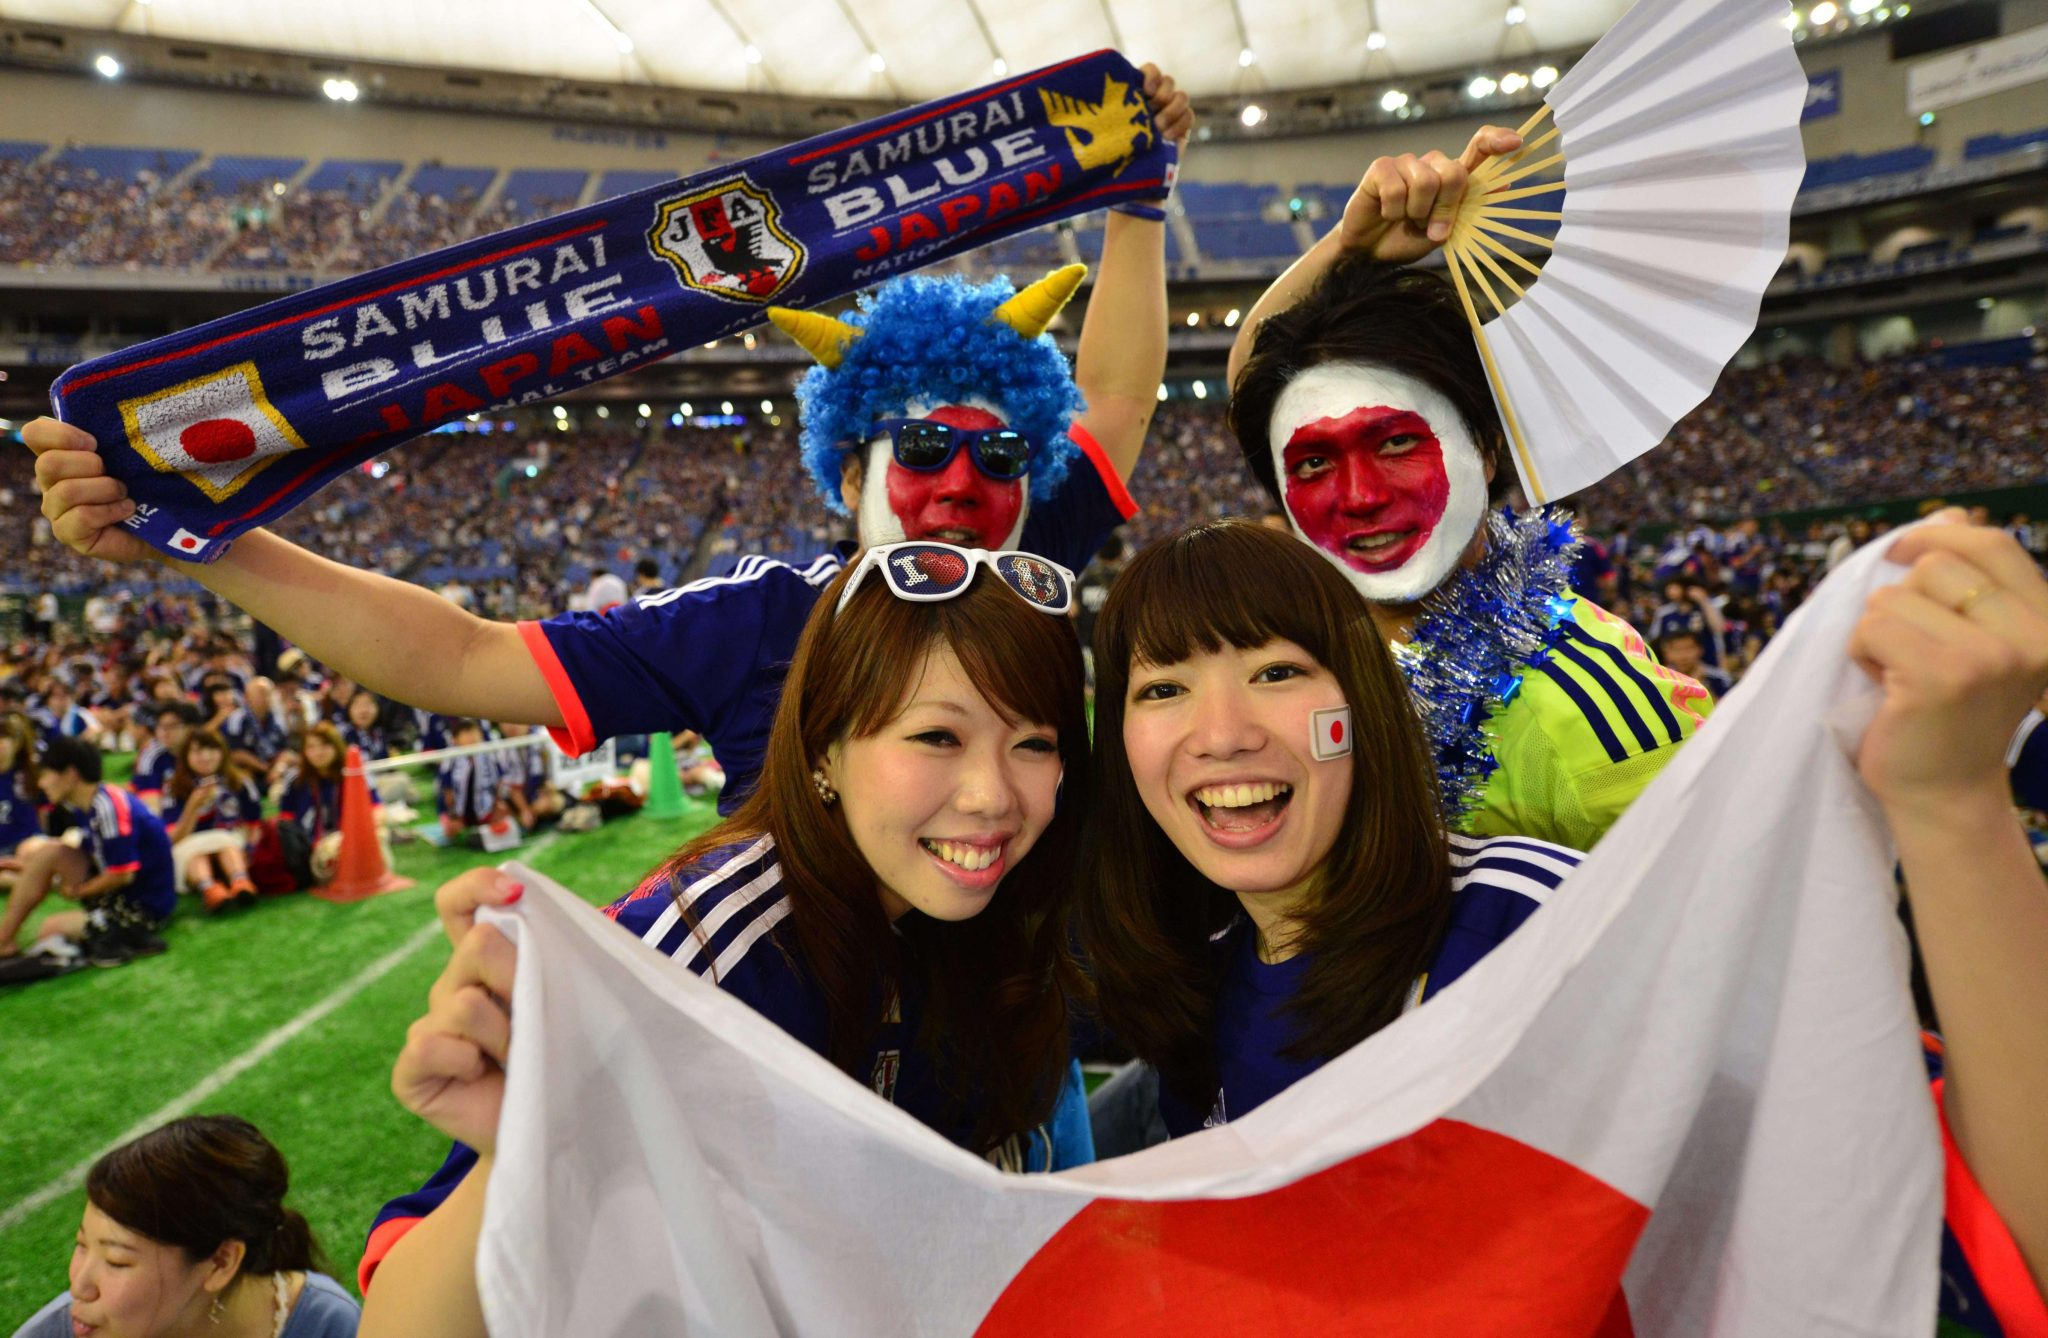 Japan world cup babes — 3